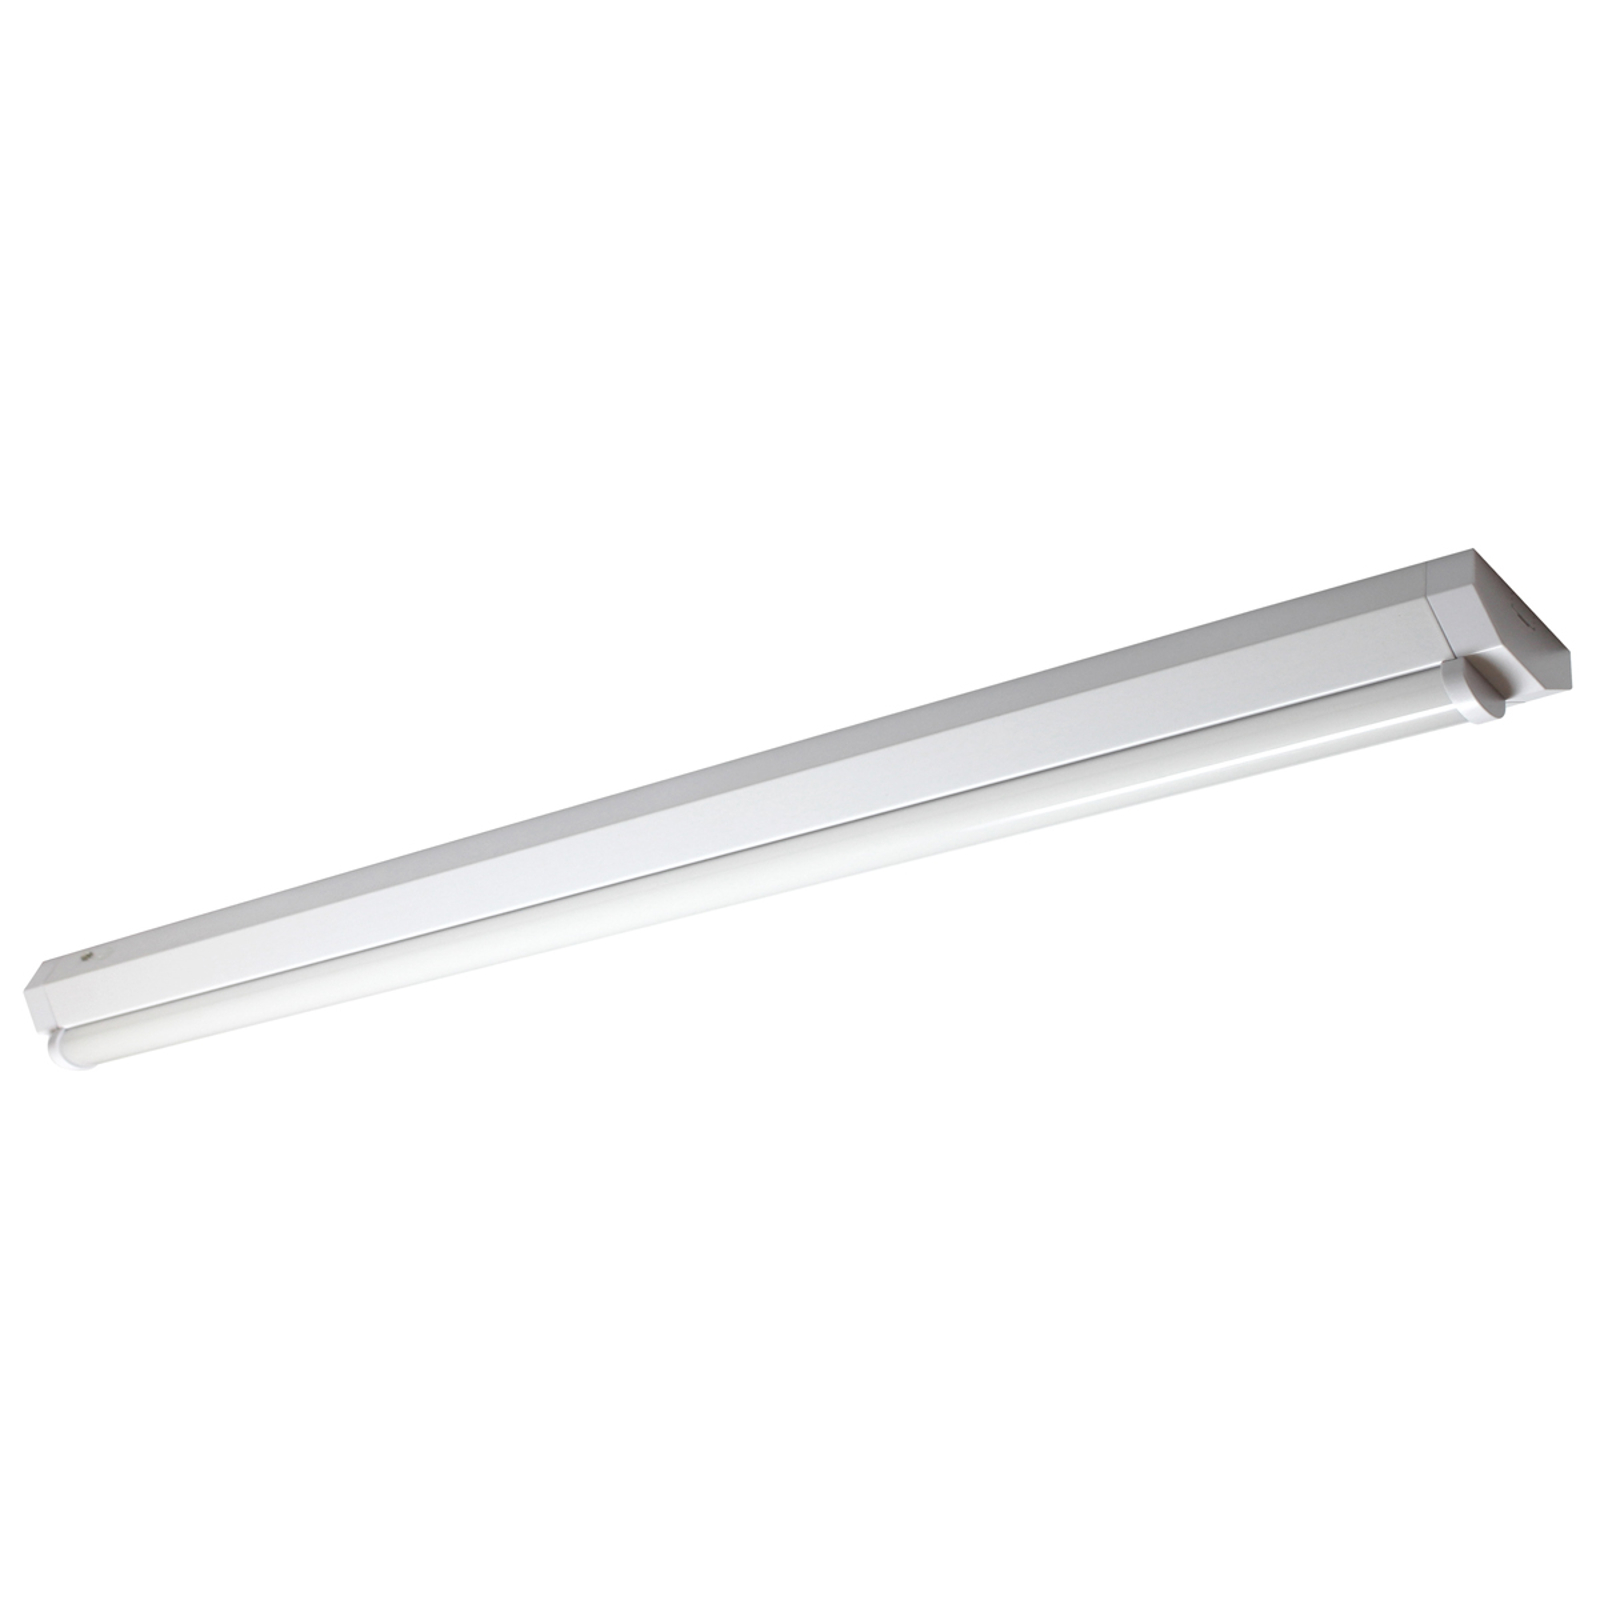 Universele LED plafondlamp Basic 1 - 150 cm